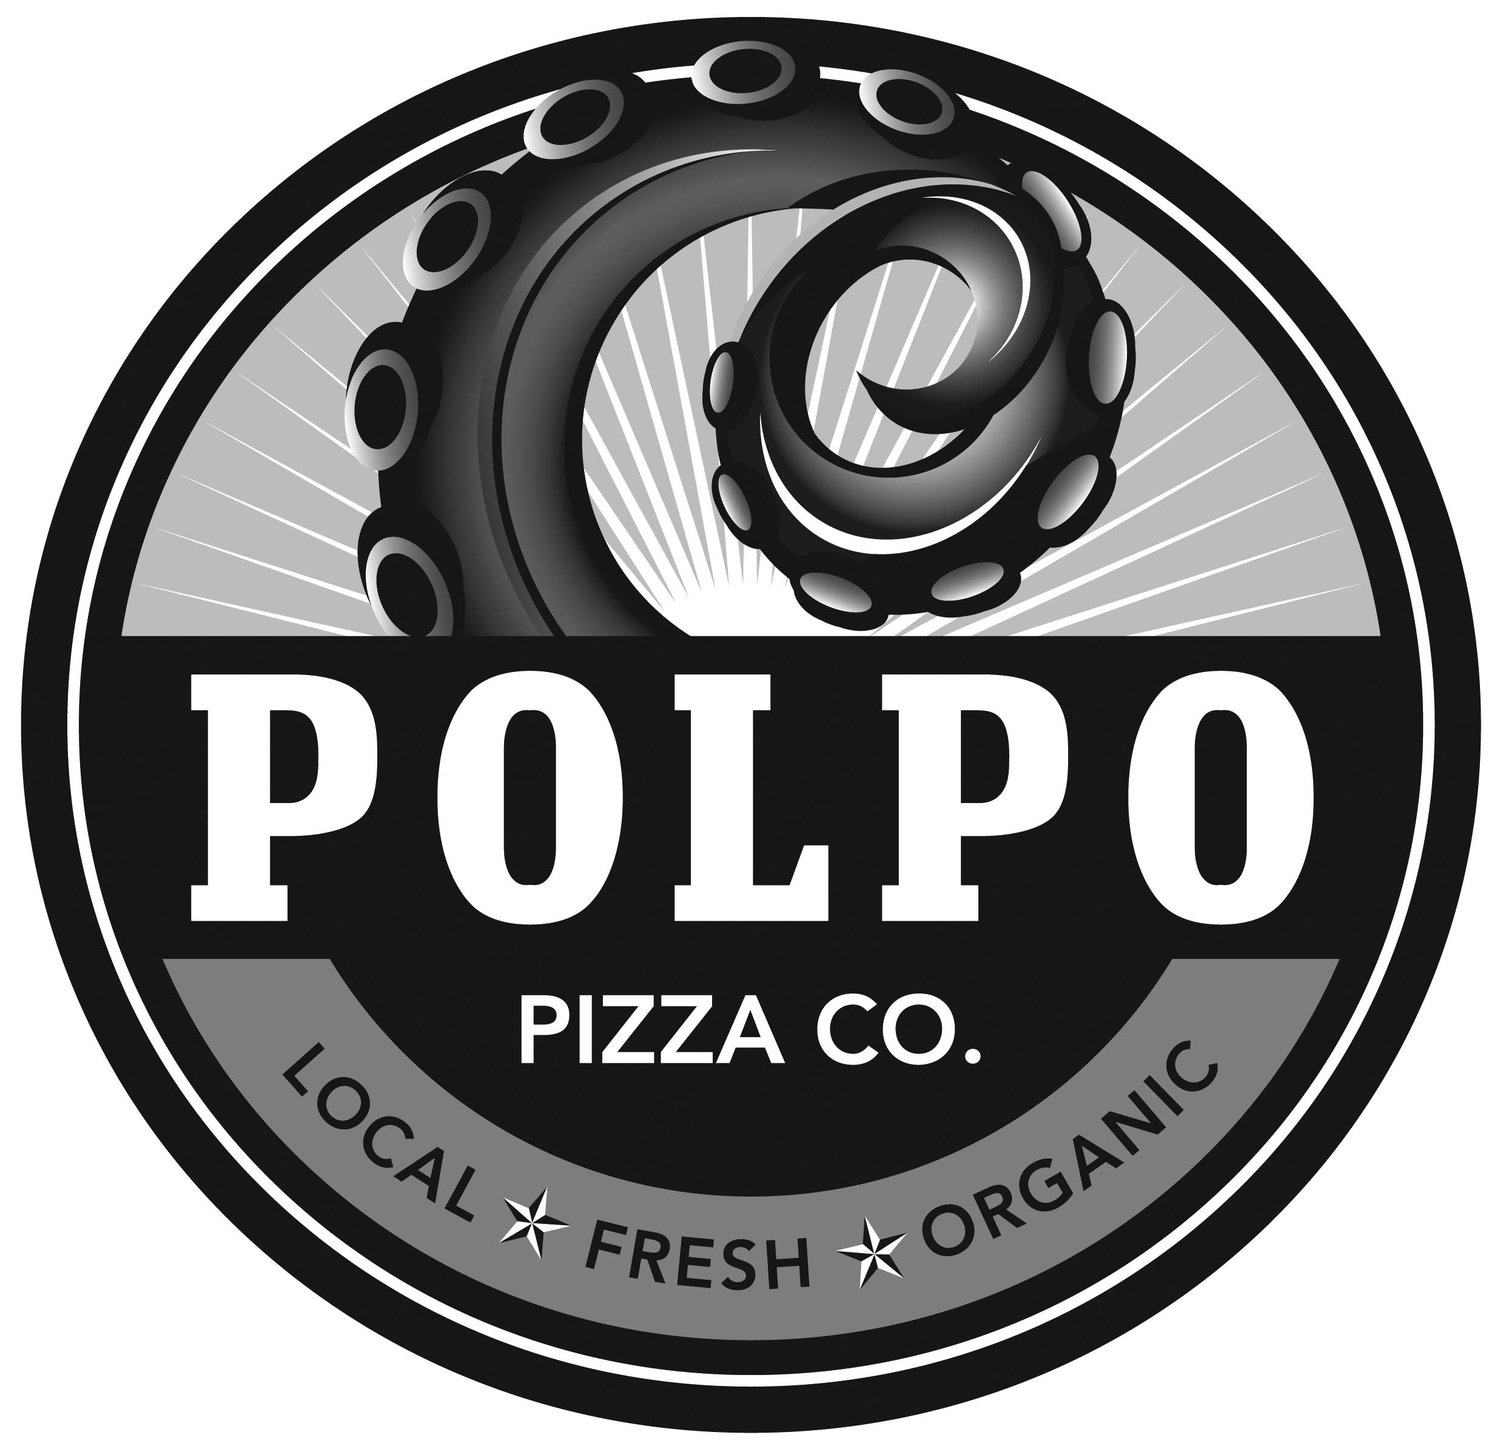 Polpo Pizza Co. - Sarasota's Best Wood-Fired Pizza Catering Truck!